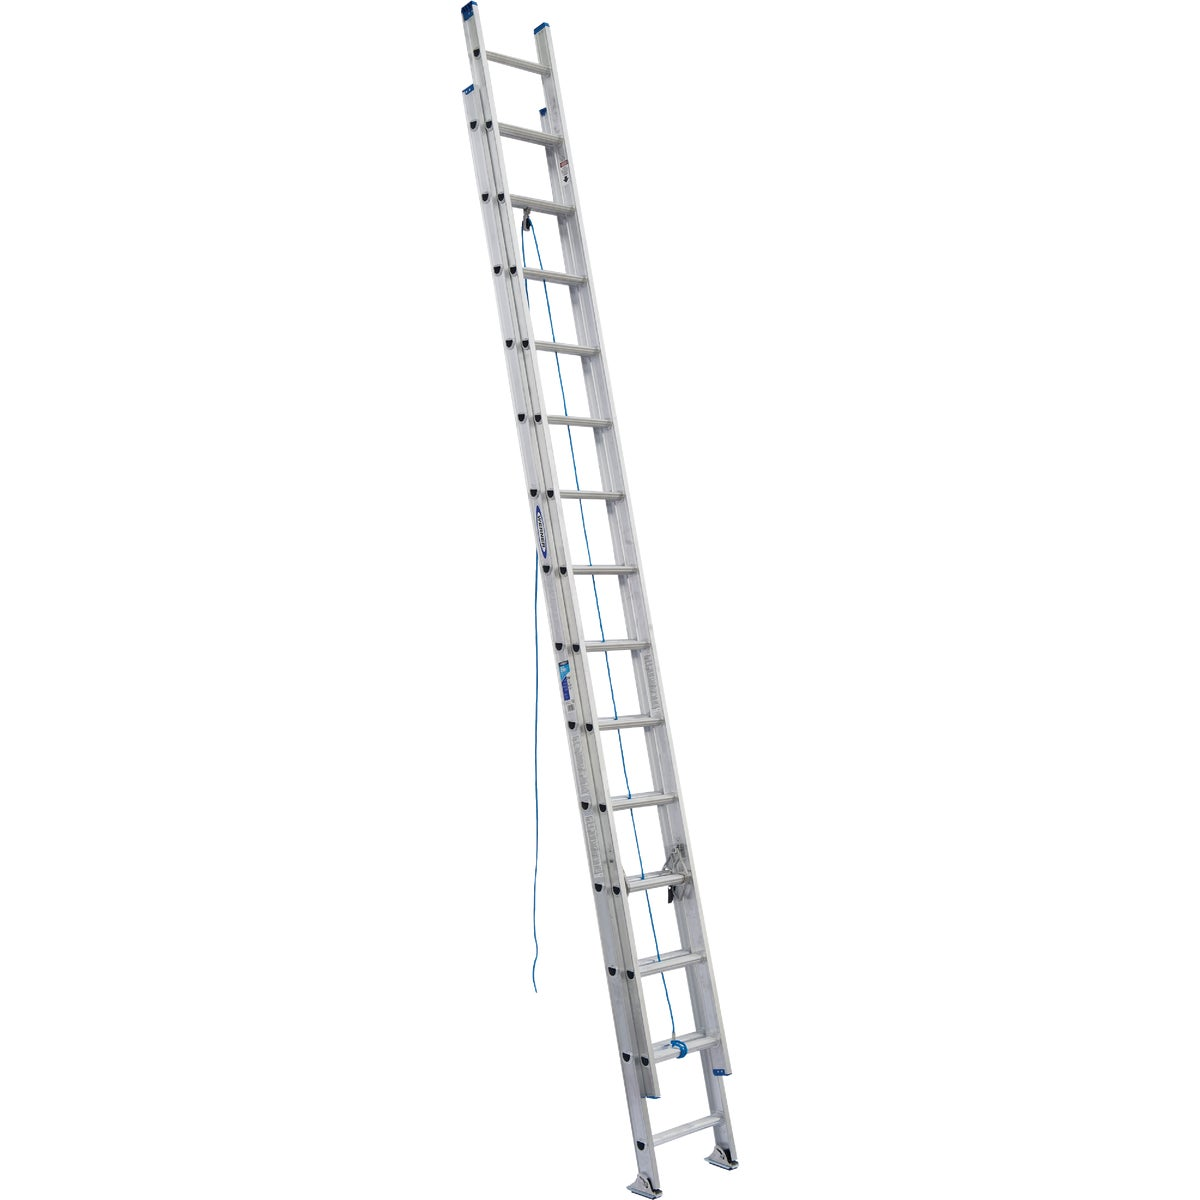 T-1 28' ALUM EXT LADDER - D1328-2 by Werner Ladder